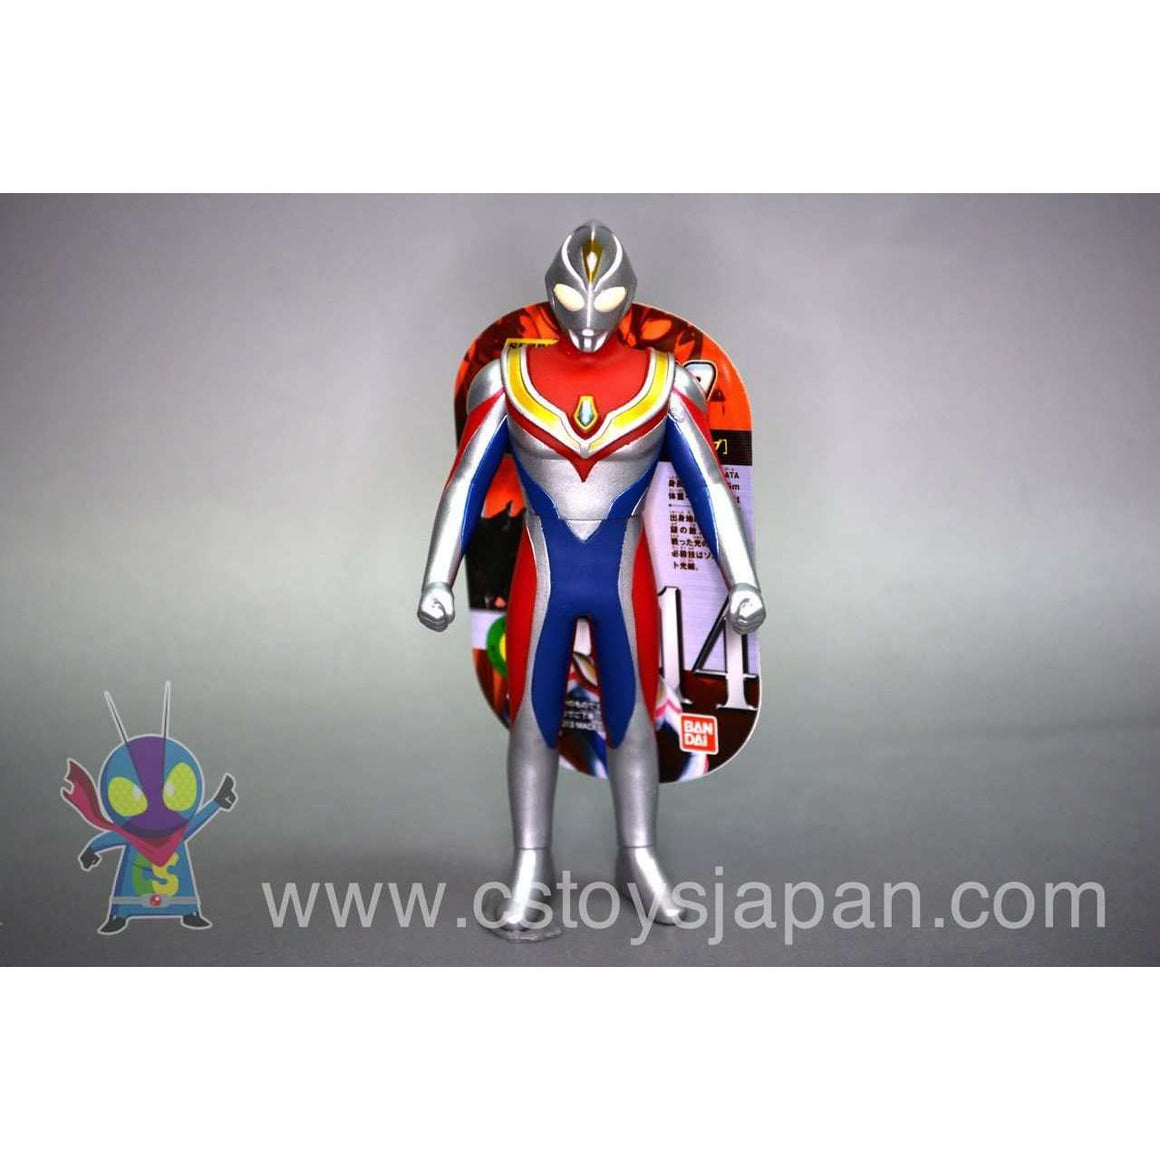 CSTOYS INTERNATIONAL:Ultra Hero Series 14 Ultraman Dyna (Flash Type)